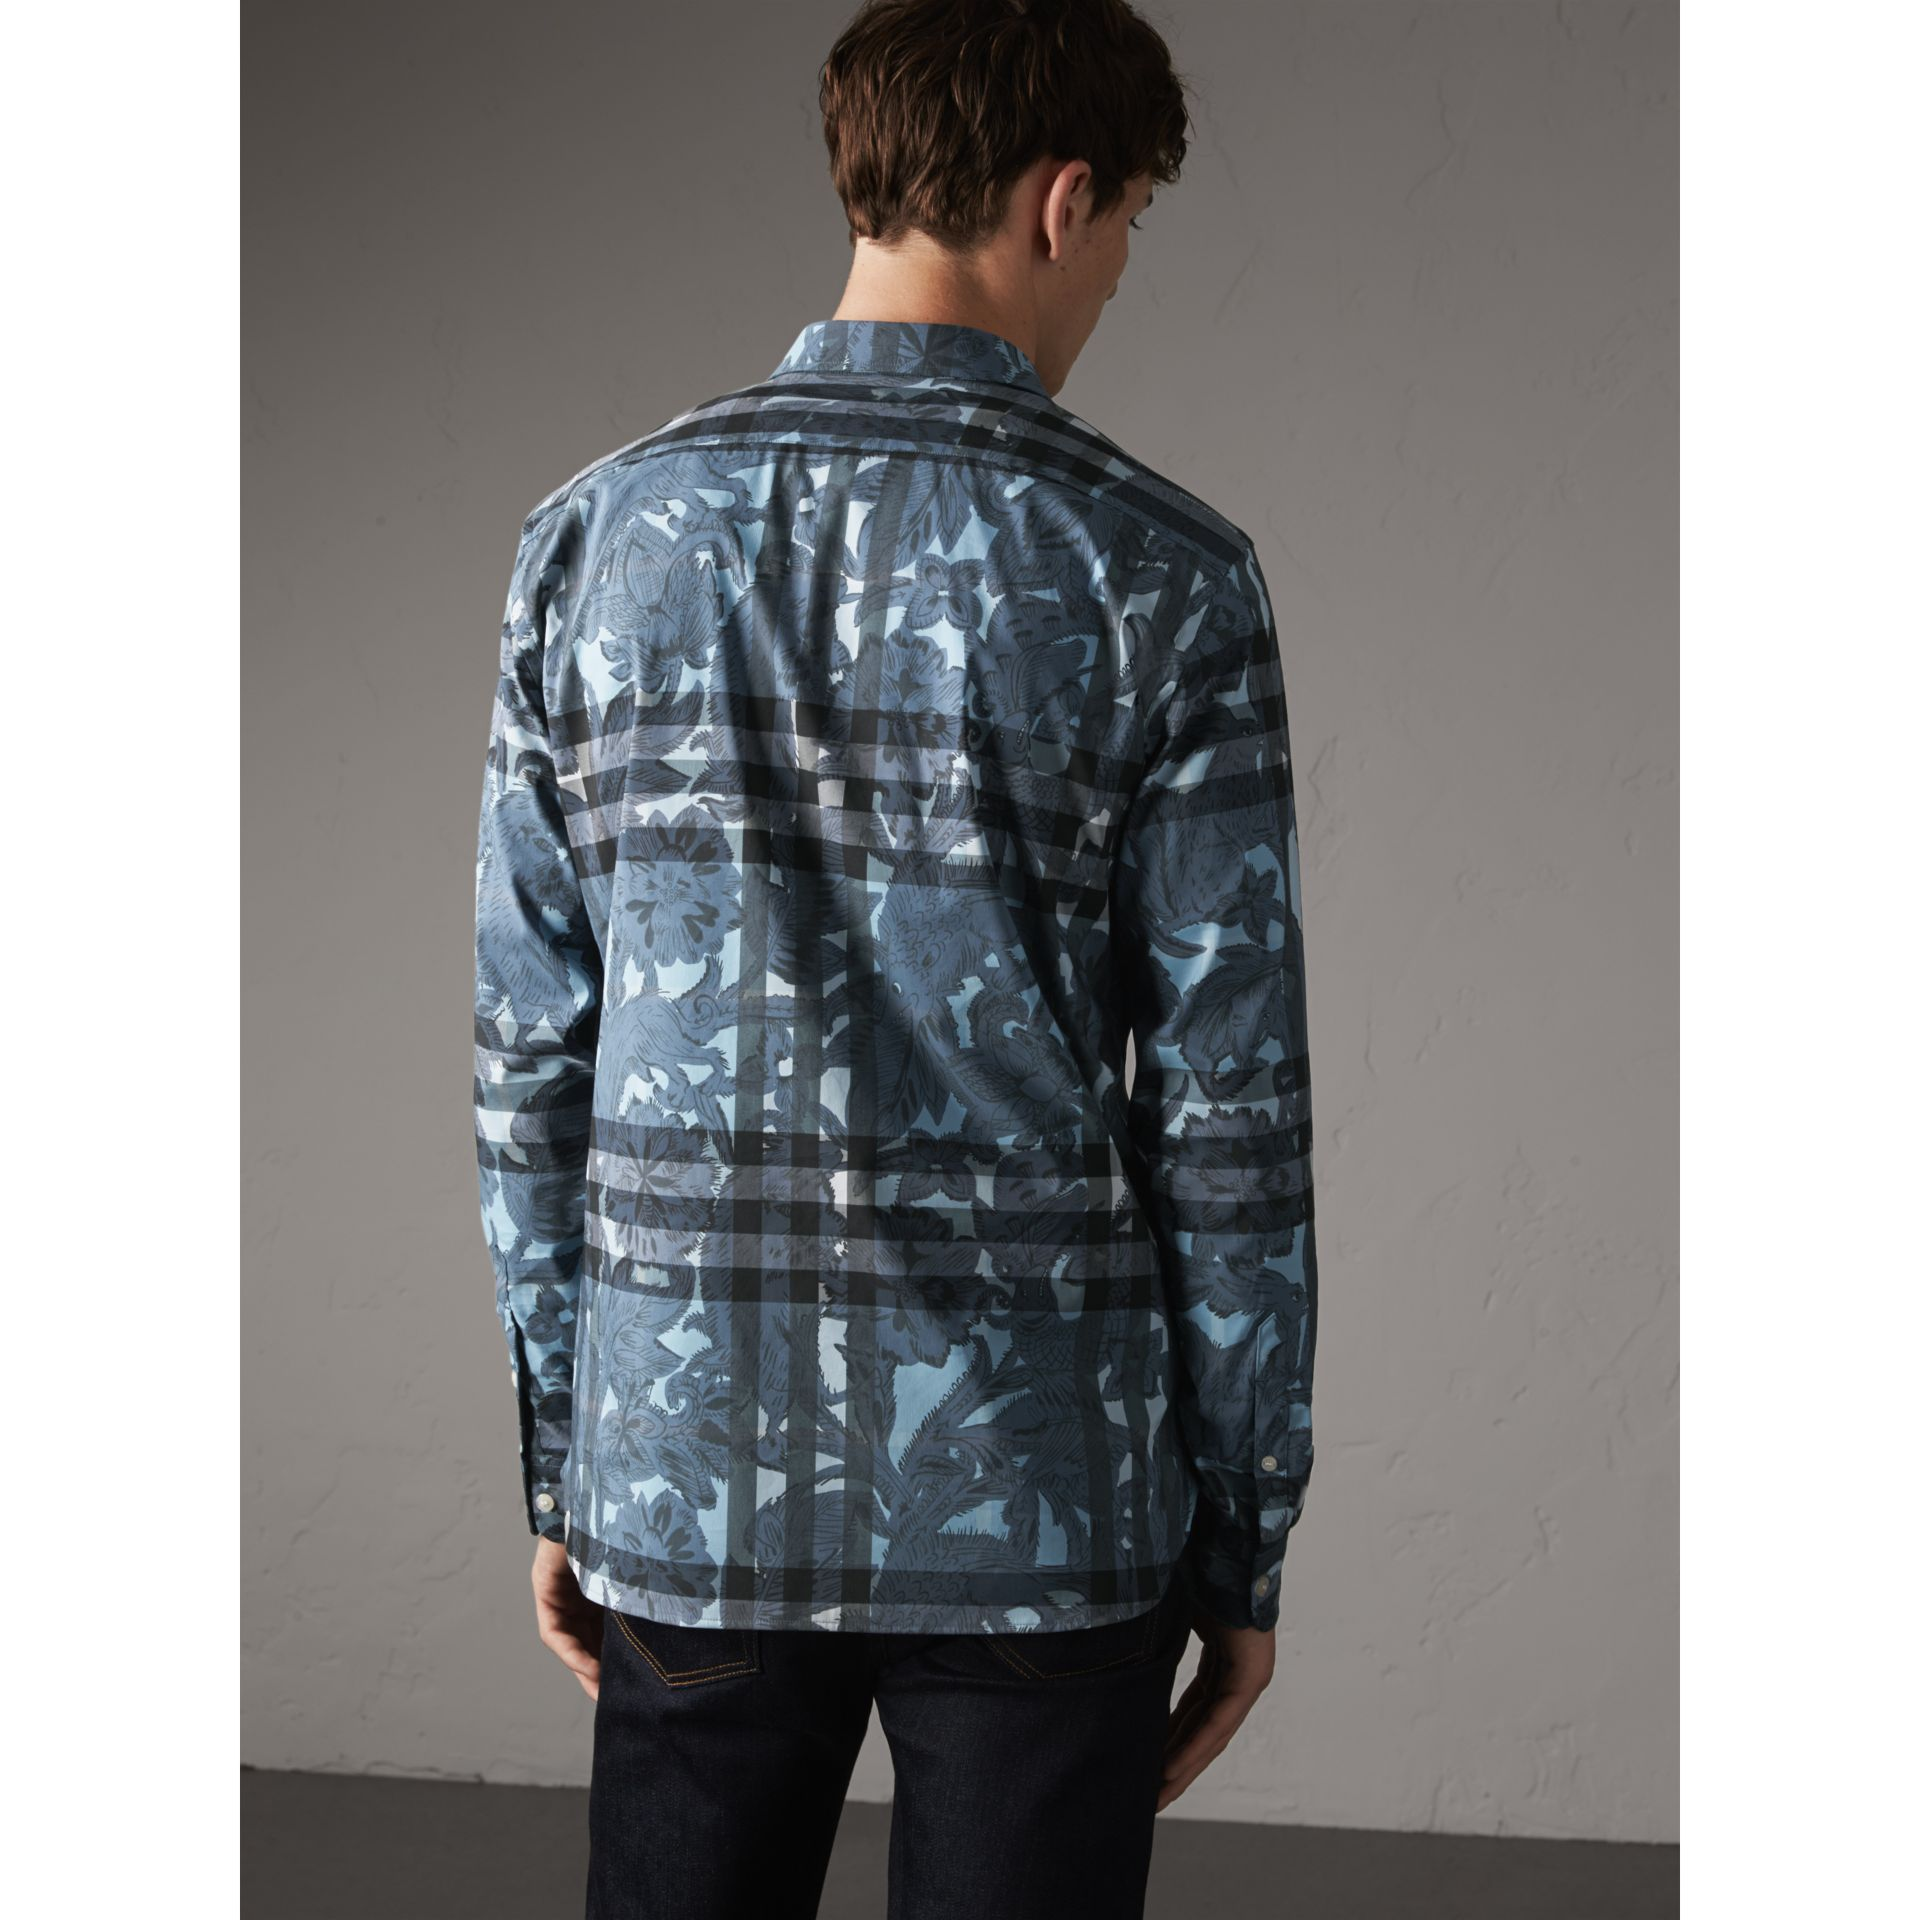 Beasts Print and Check Stretch Cotton Blend Shirt in Stone Blue - Men | Burberry - gallery image 3